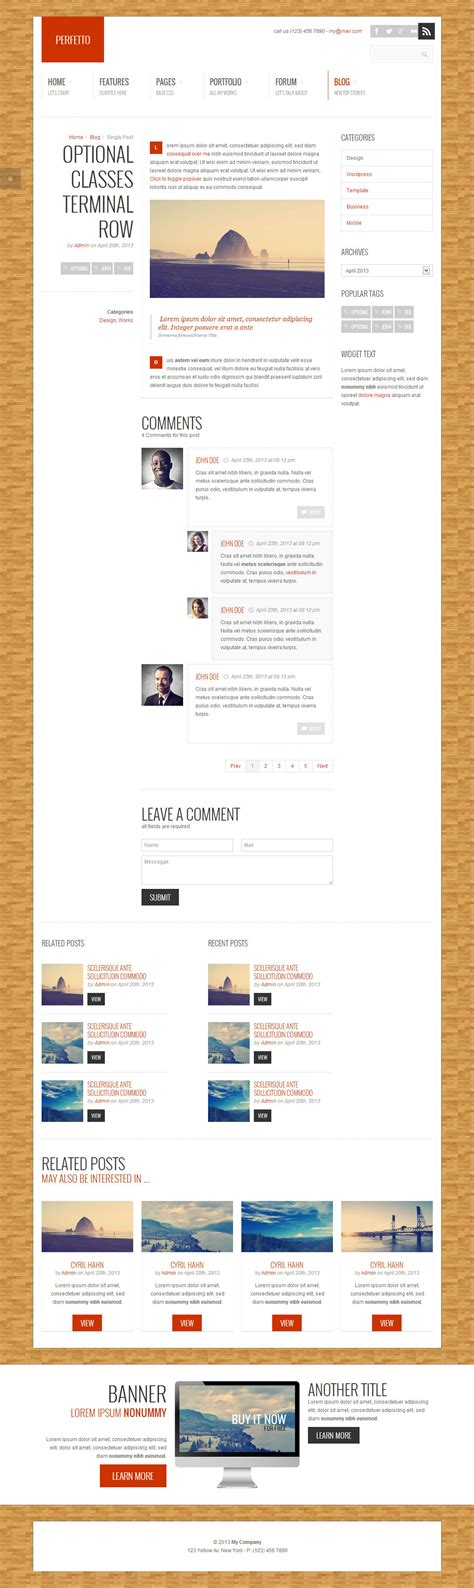 themeforest navbar perfetto responsive bootstrap template by angelom